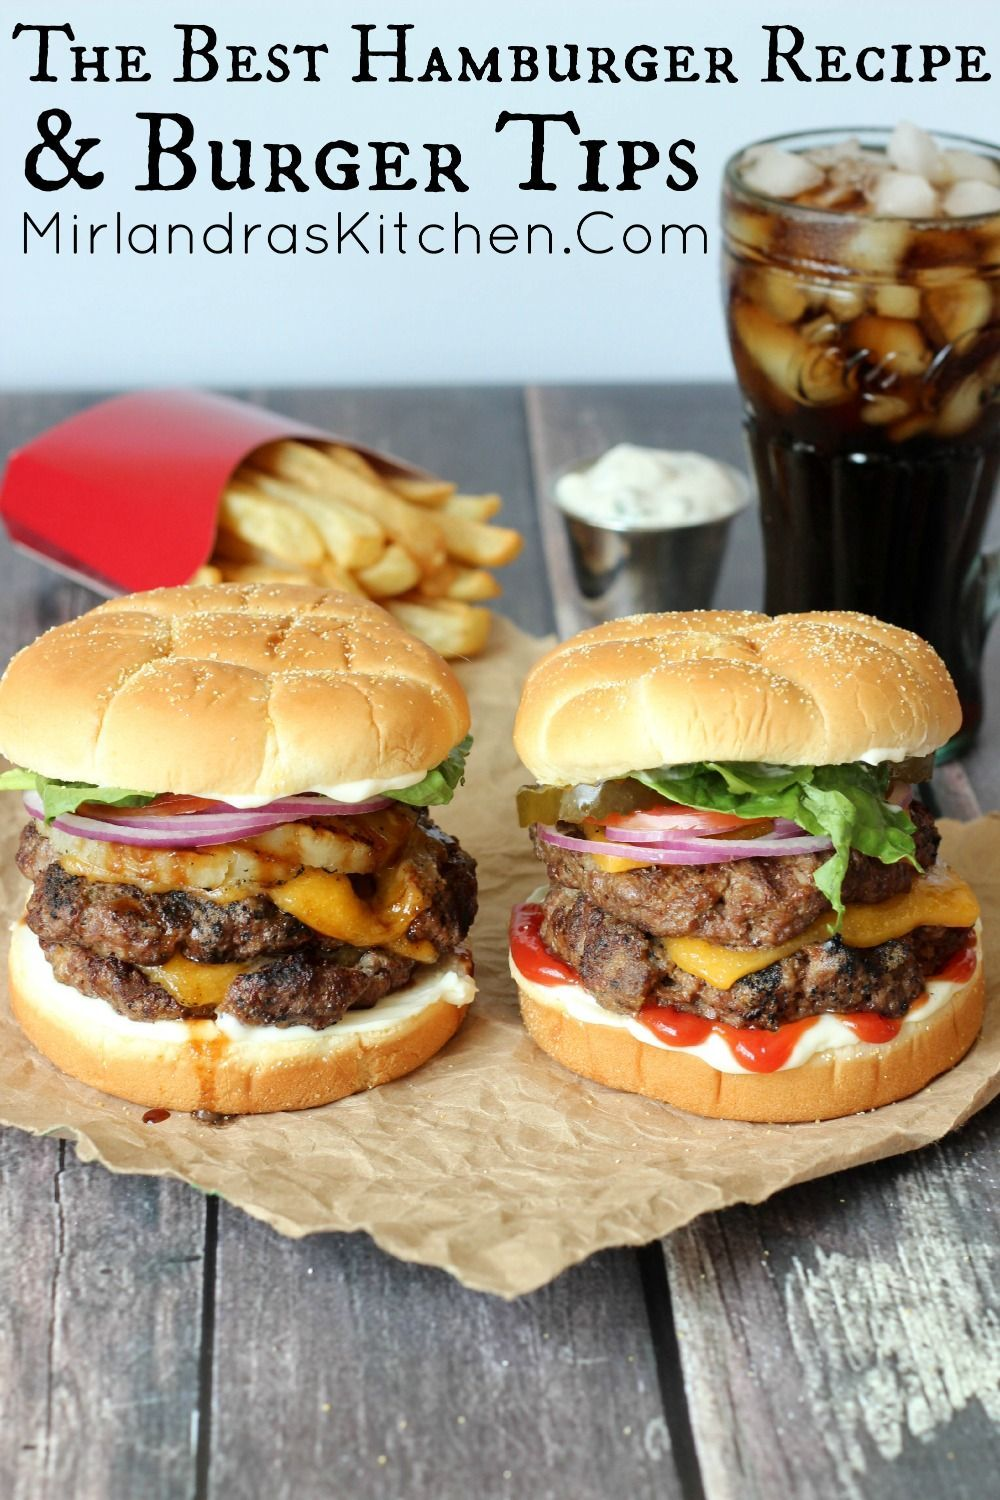 Best Hamburger Recipe & Burger Tips This is the best hamburger recipe for juicy, tender burgers everybody loves.  My 9 easy hamburger making and grilling tips will have you making the perfect hamburgers all year.  Check out my easy tip for making the perfect patty without tools.  You can change this recipe up for pineapple / teriyaki burgers in a flash and